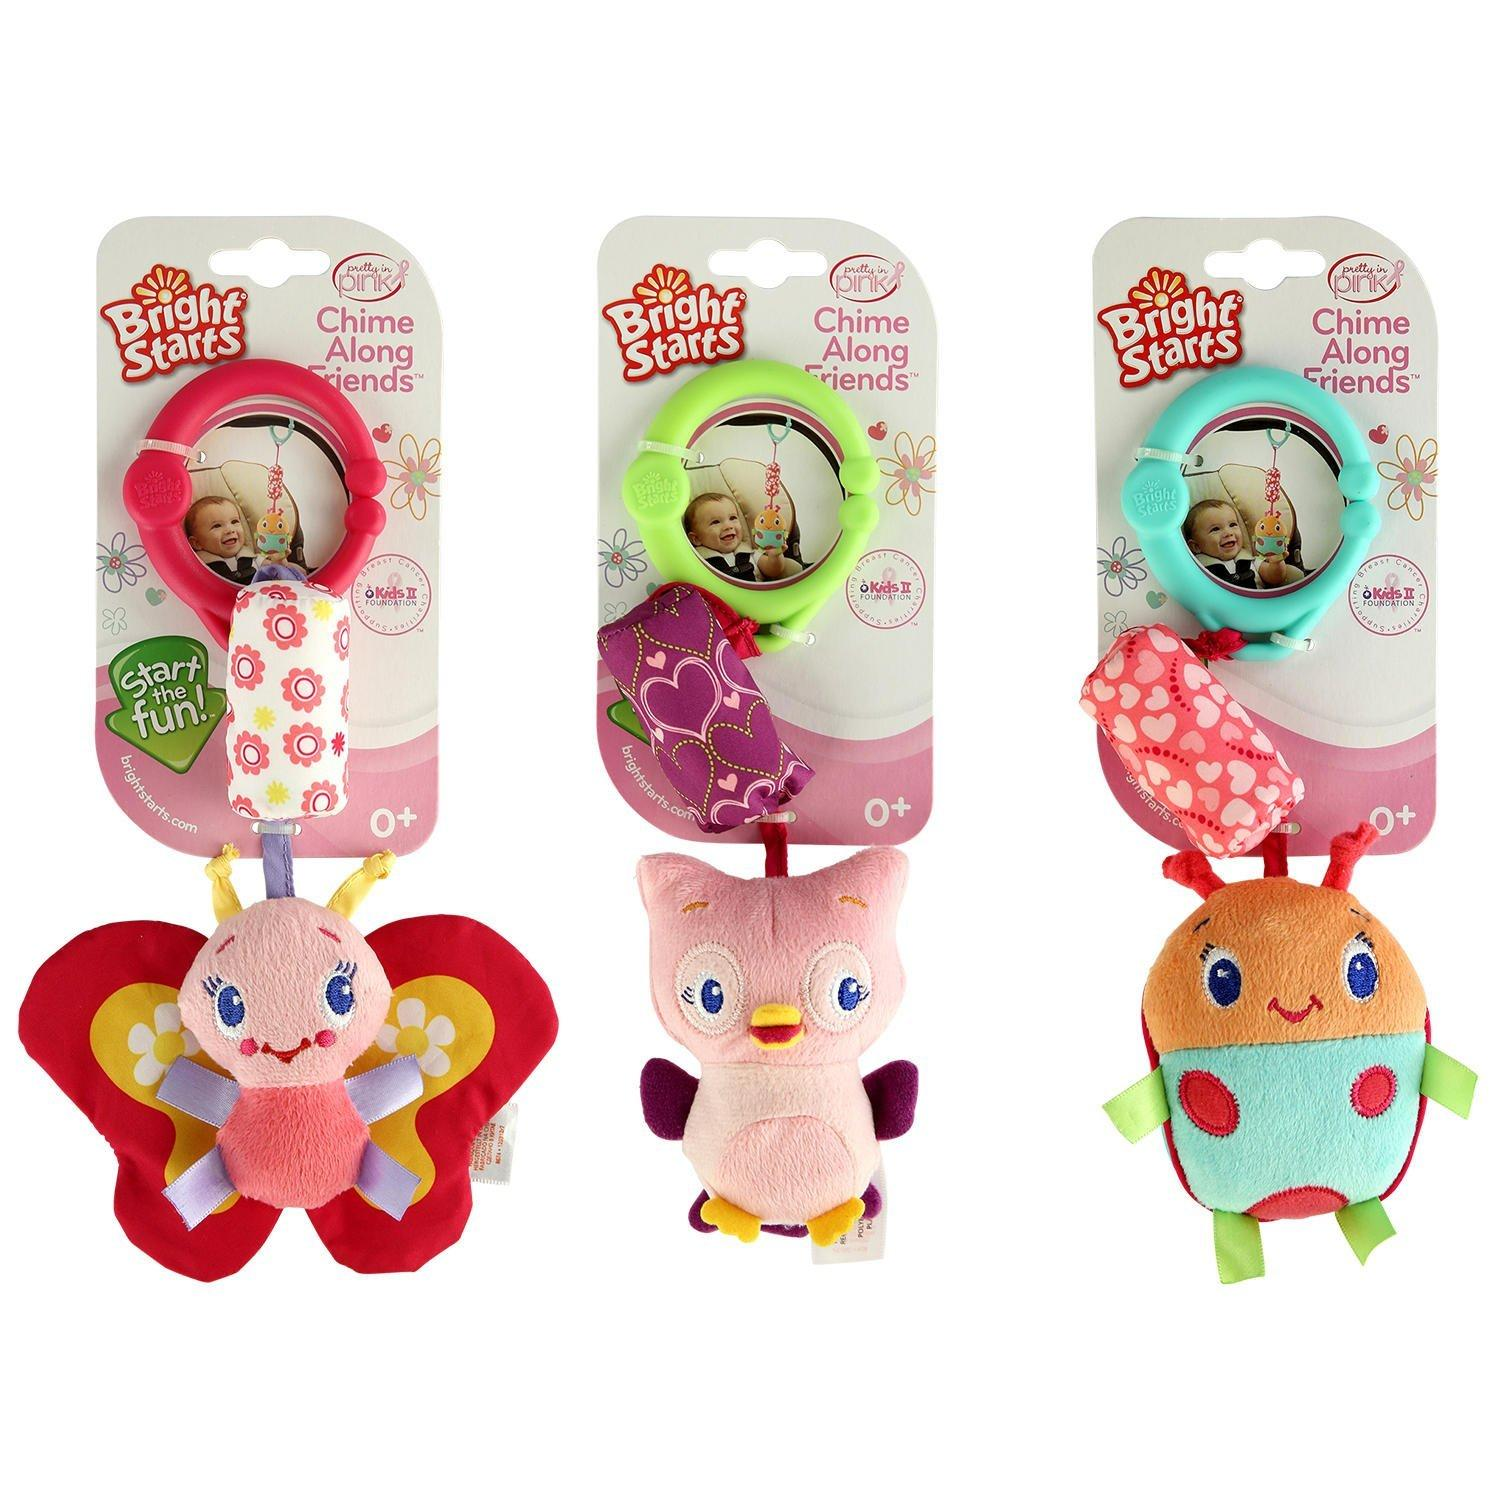 Bright Starts Chime Along Friends Take-Along Toys-Styles Will Vary Assortment of 3